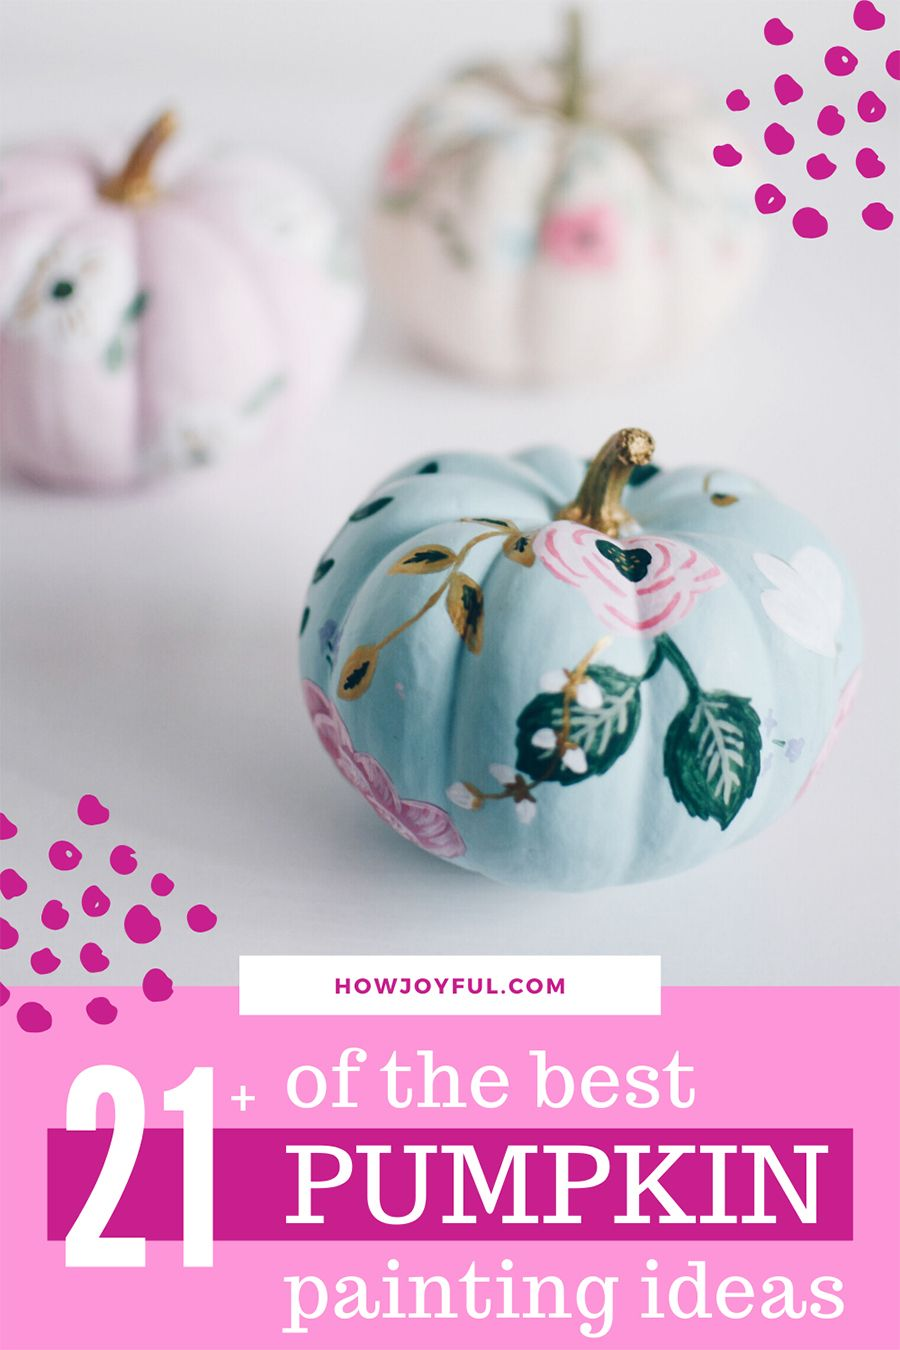 Pumpkin painting ideas - No carving pumpkin decor